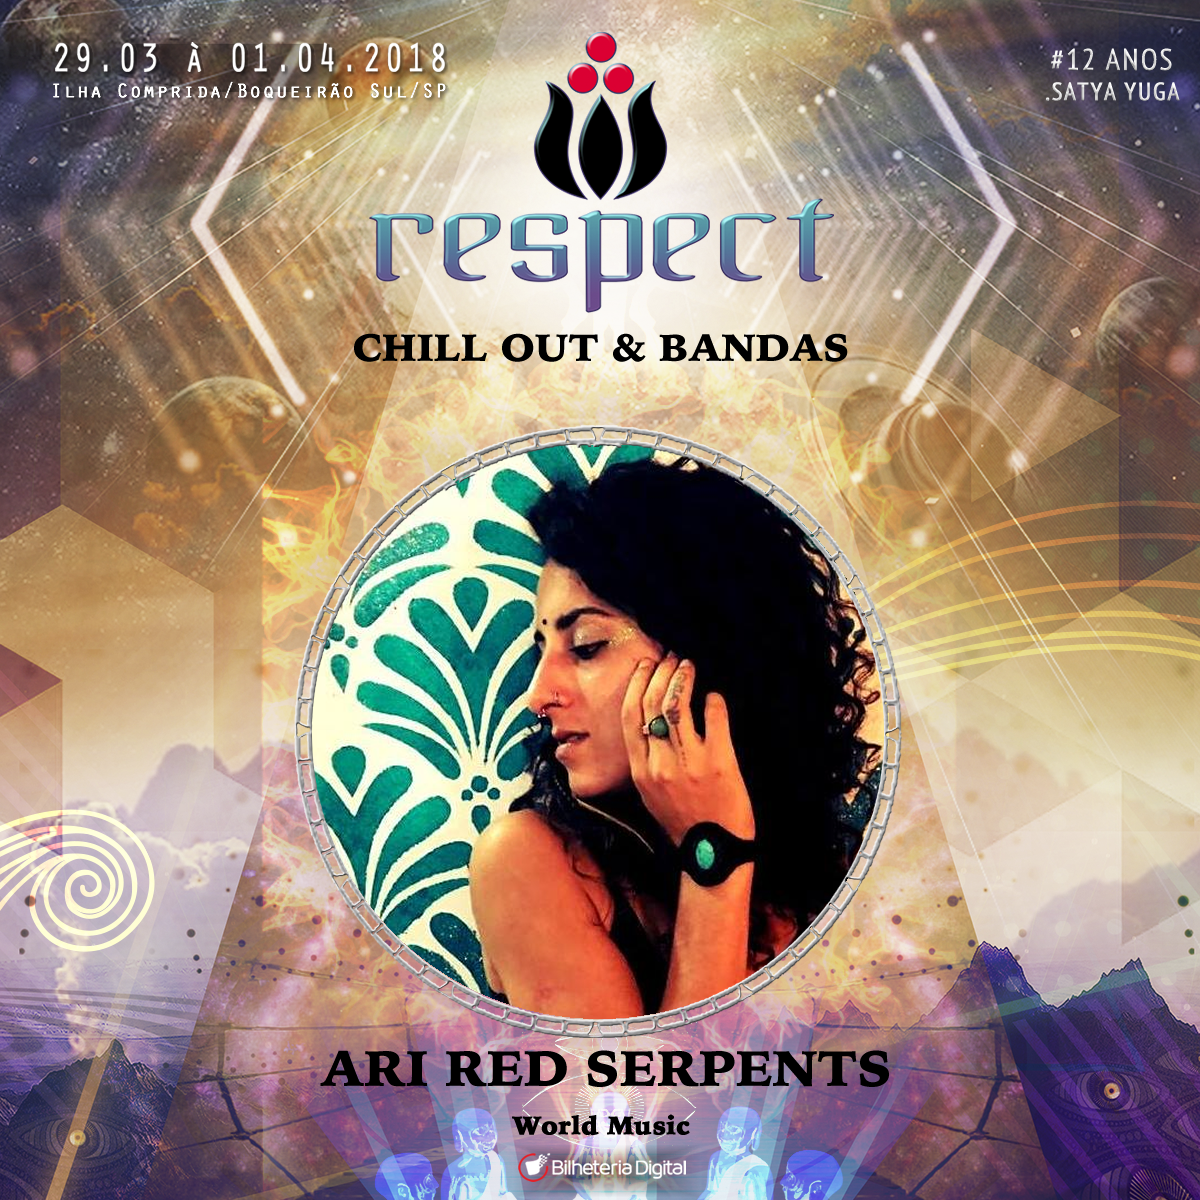 Ari red serpents @ Artista Confirmado Respect Festival 2018